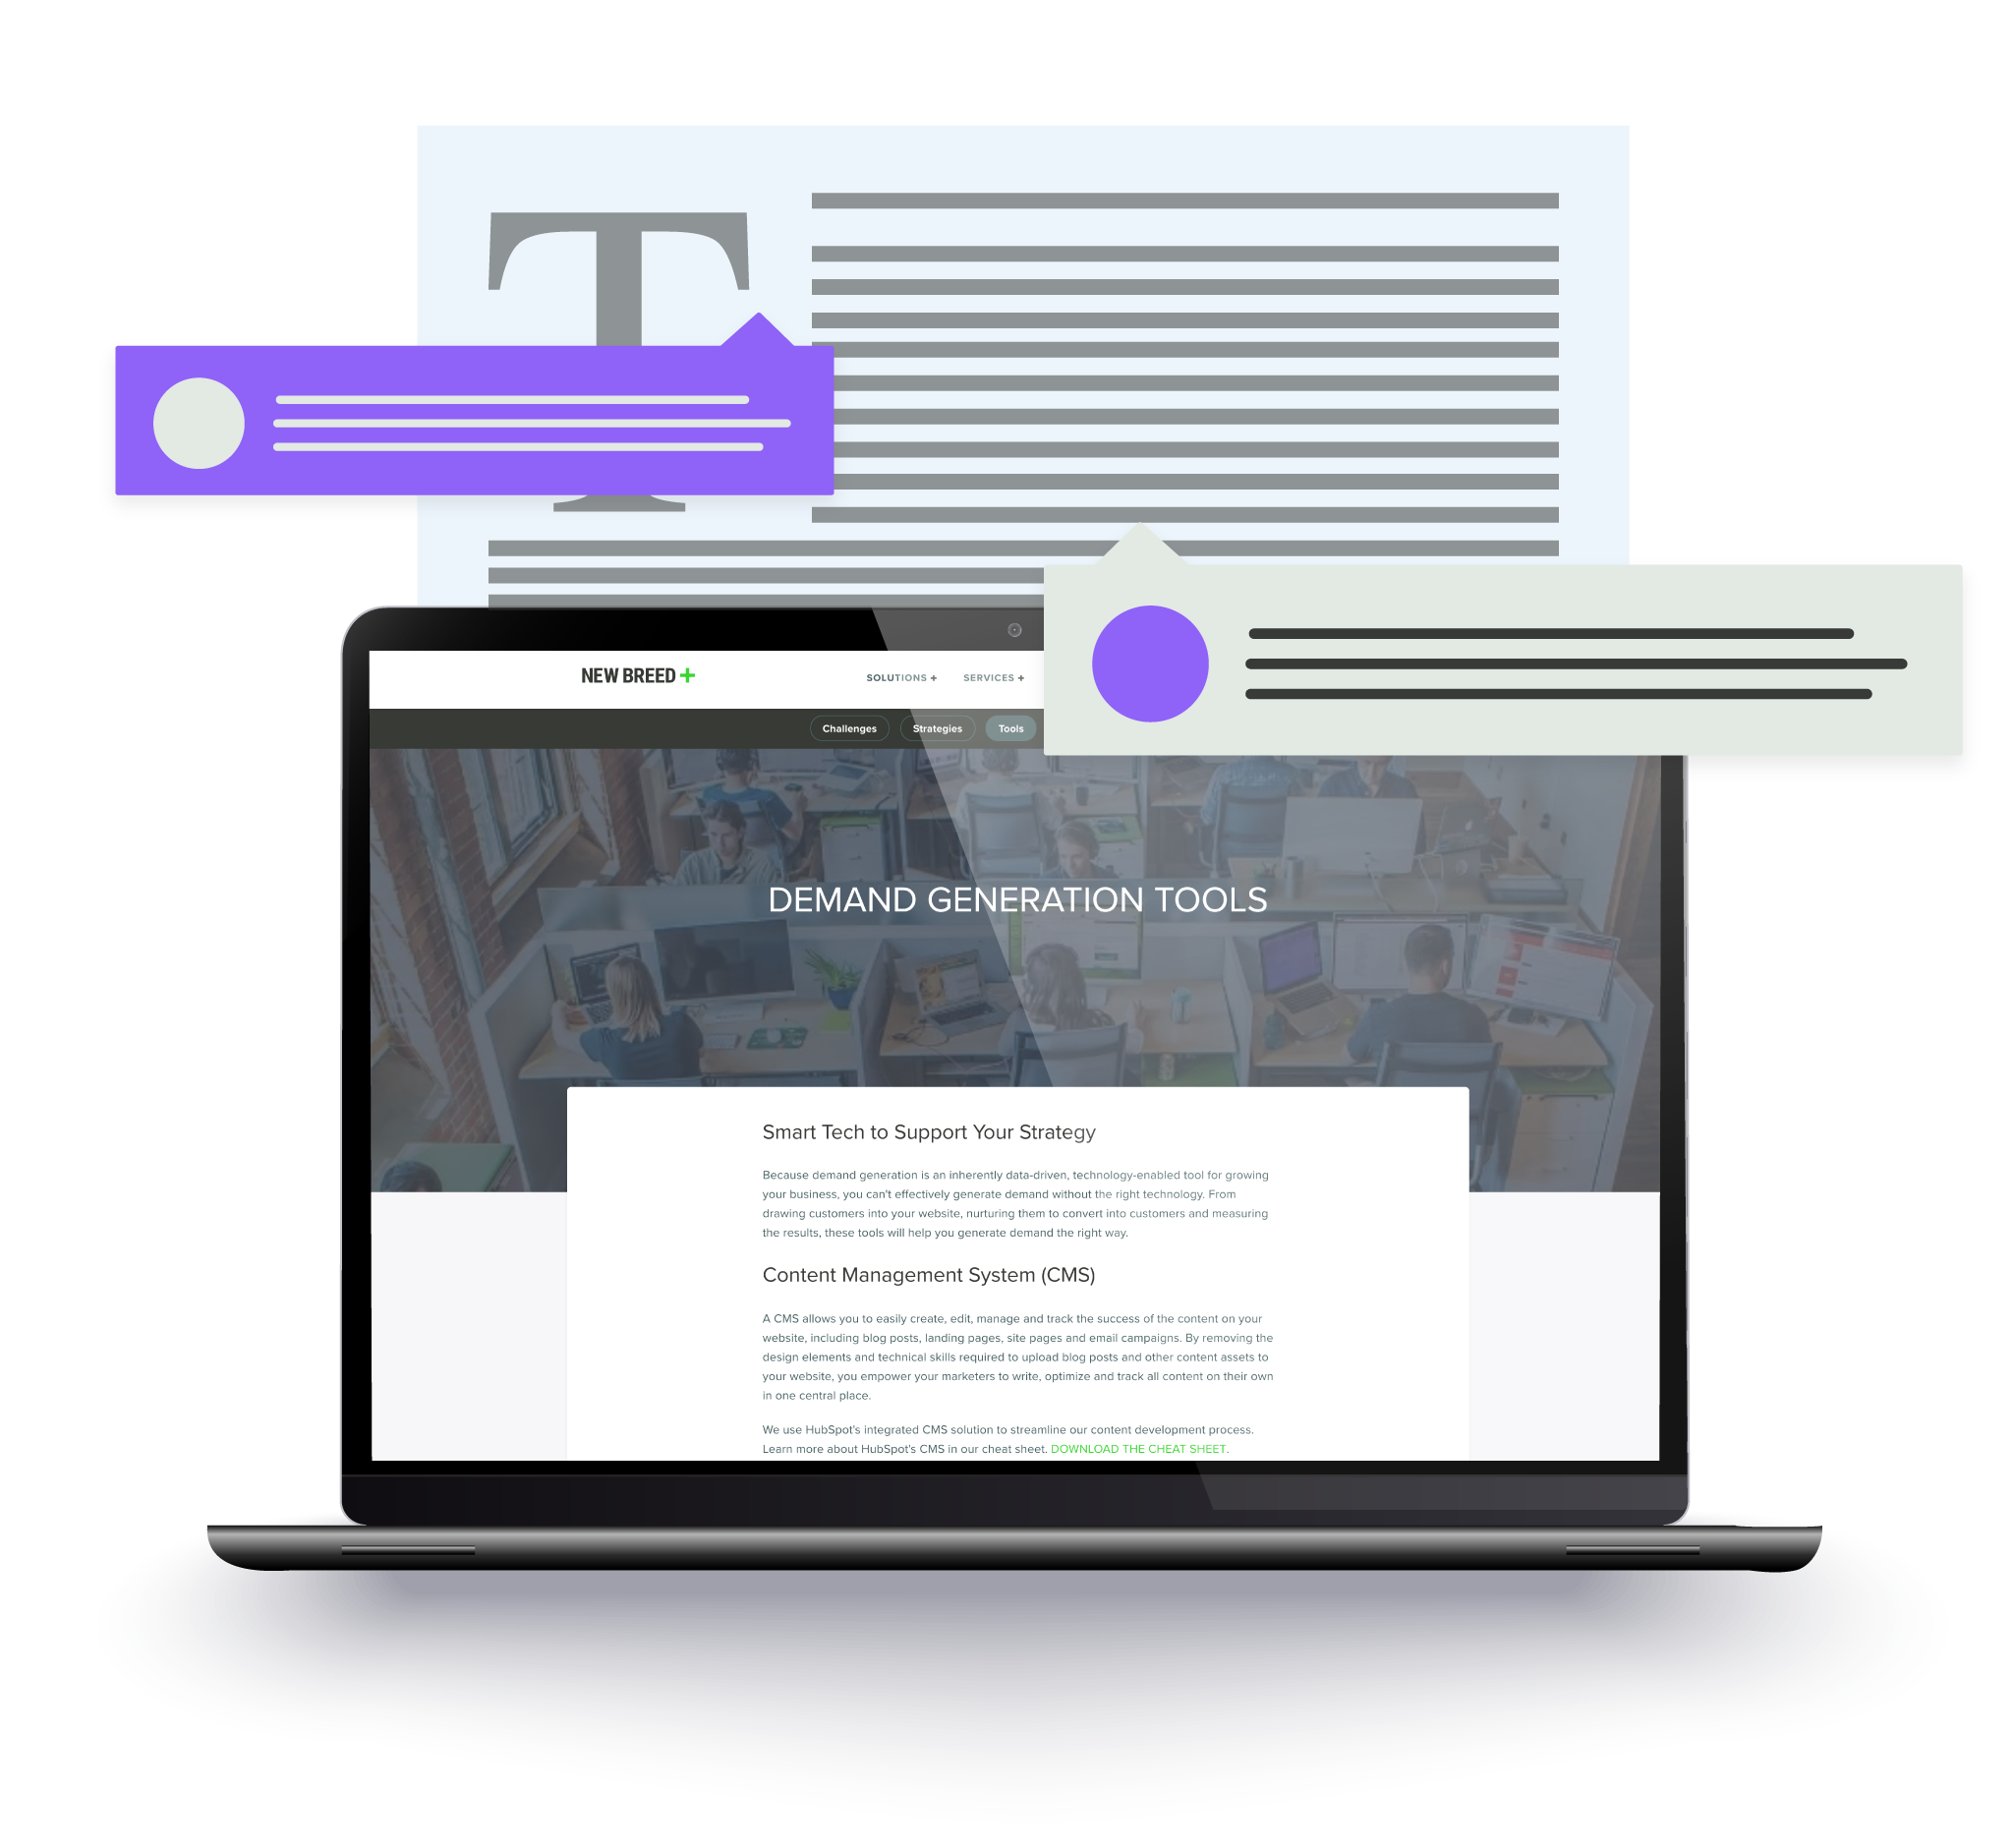 Mockup of website content production